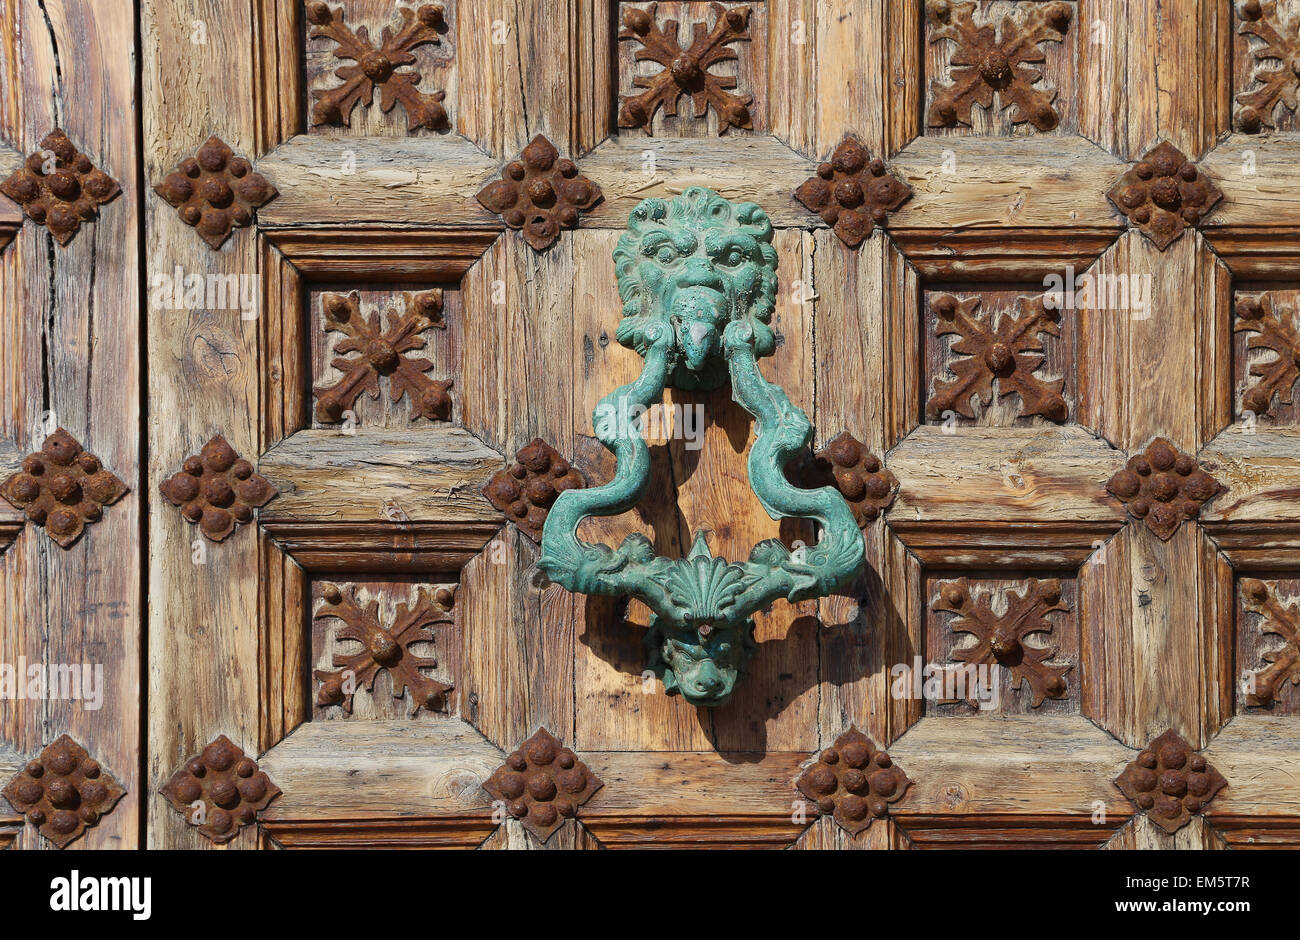 Spain. Catalonia. Sitges, Harbour Front, Door Handles. - Stock Image